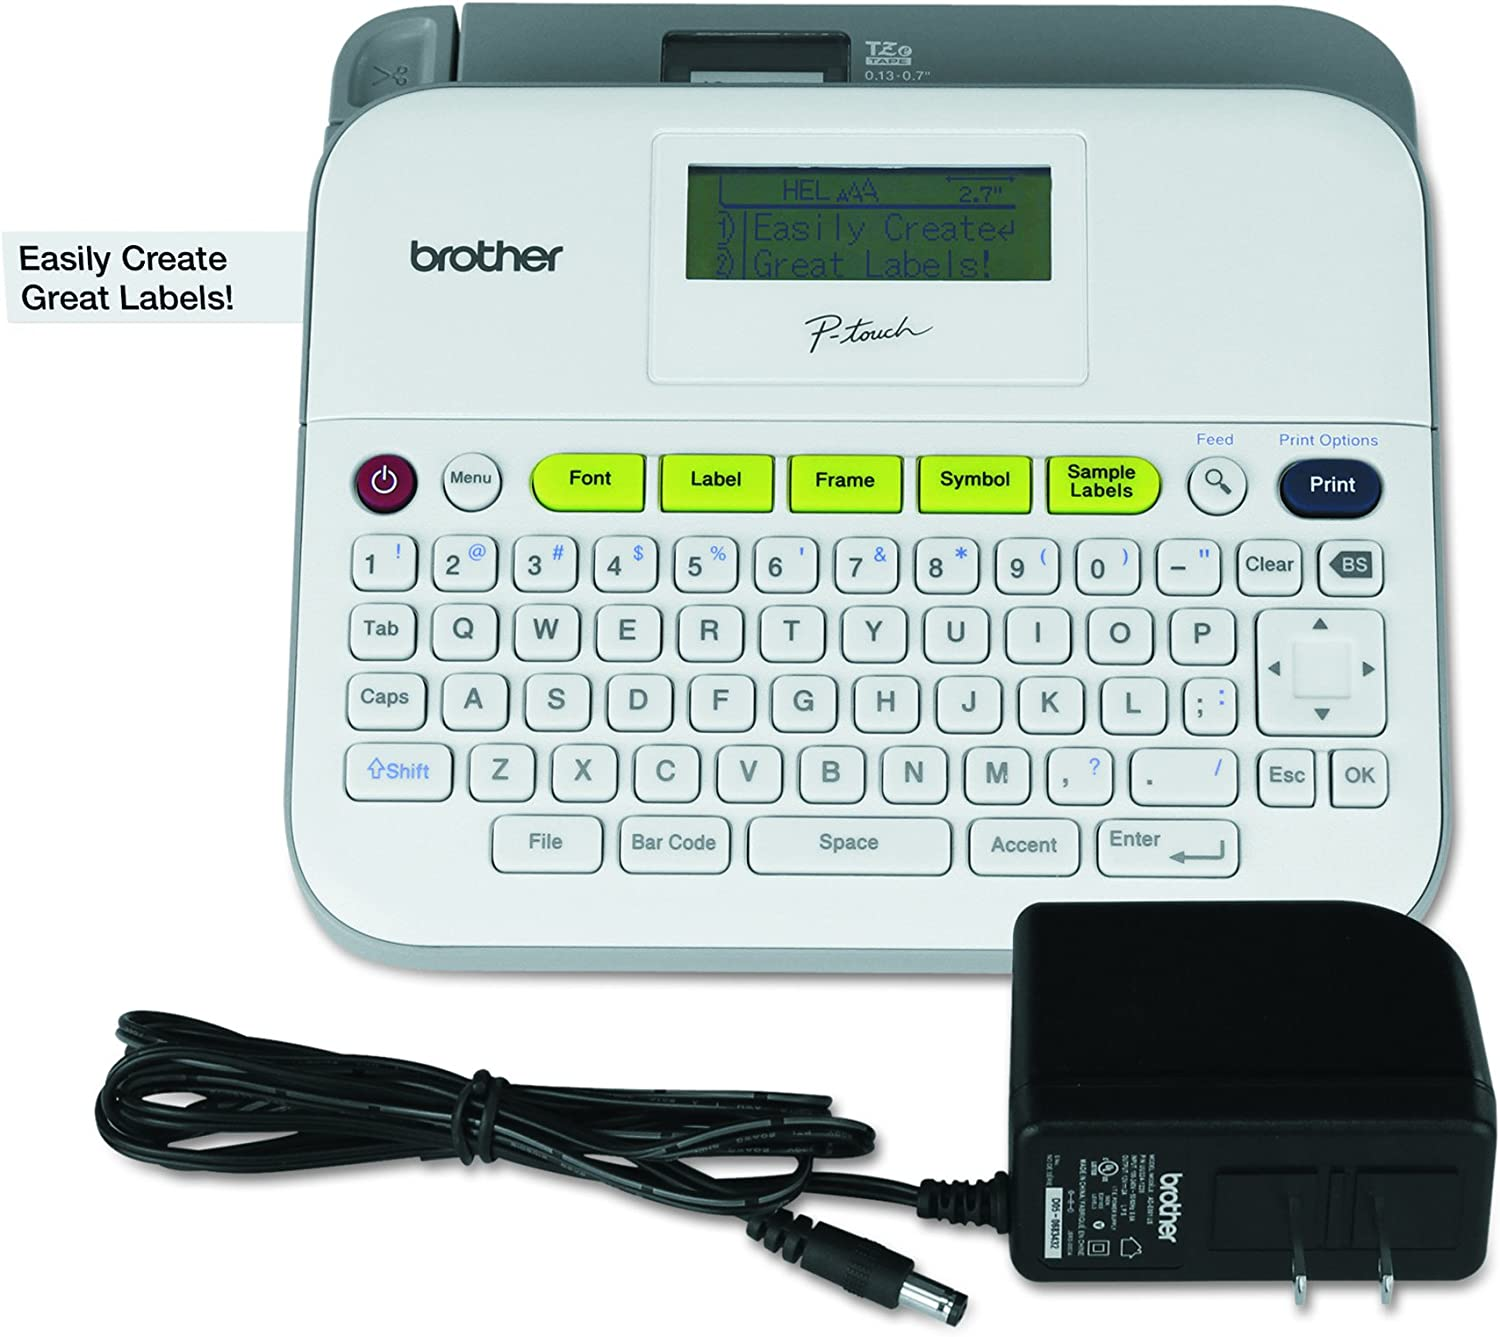 Brother P-touch Label Maker, Versatile Easy-to-Use Labeler, PTD400AD,AC Adapter, QWERTY Keyboard, Multiple Line Labeling, White